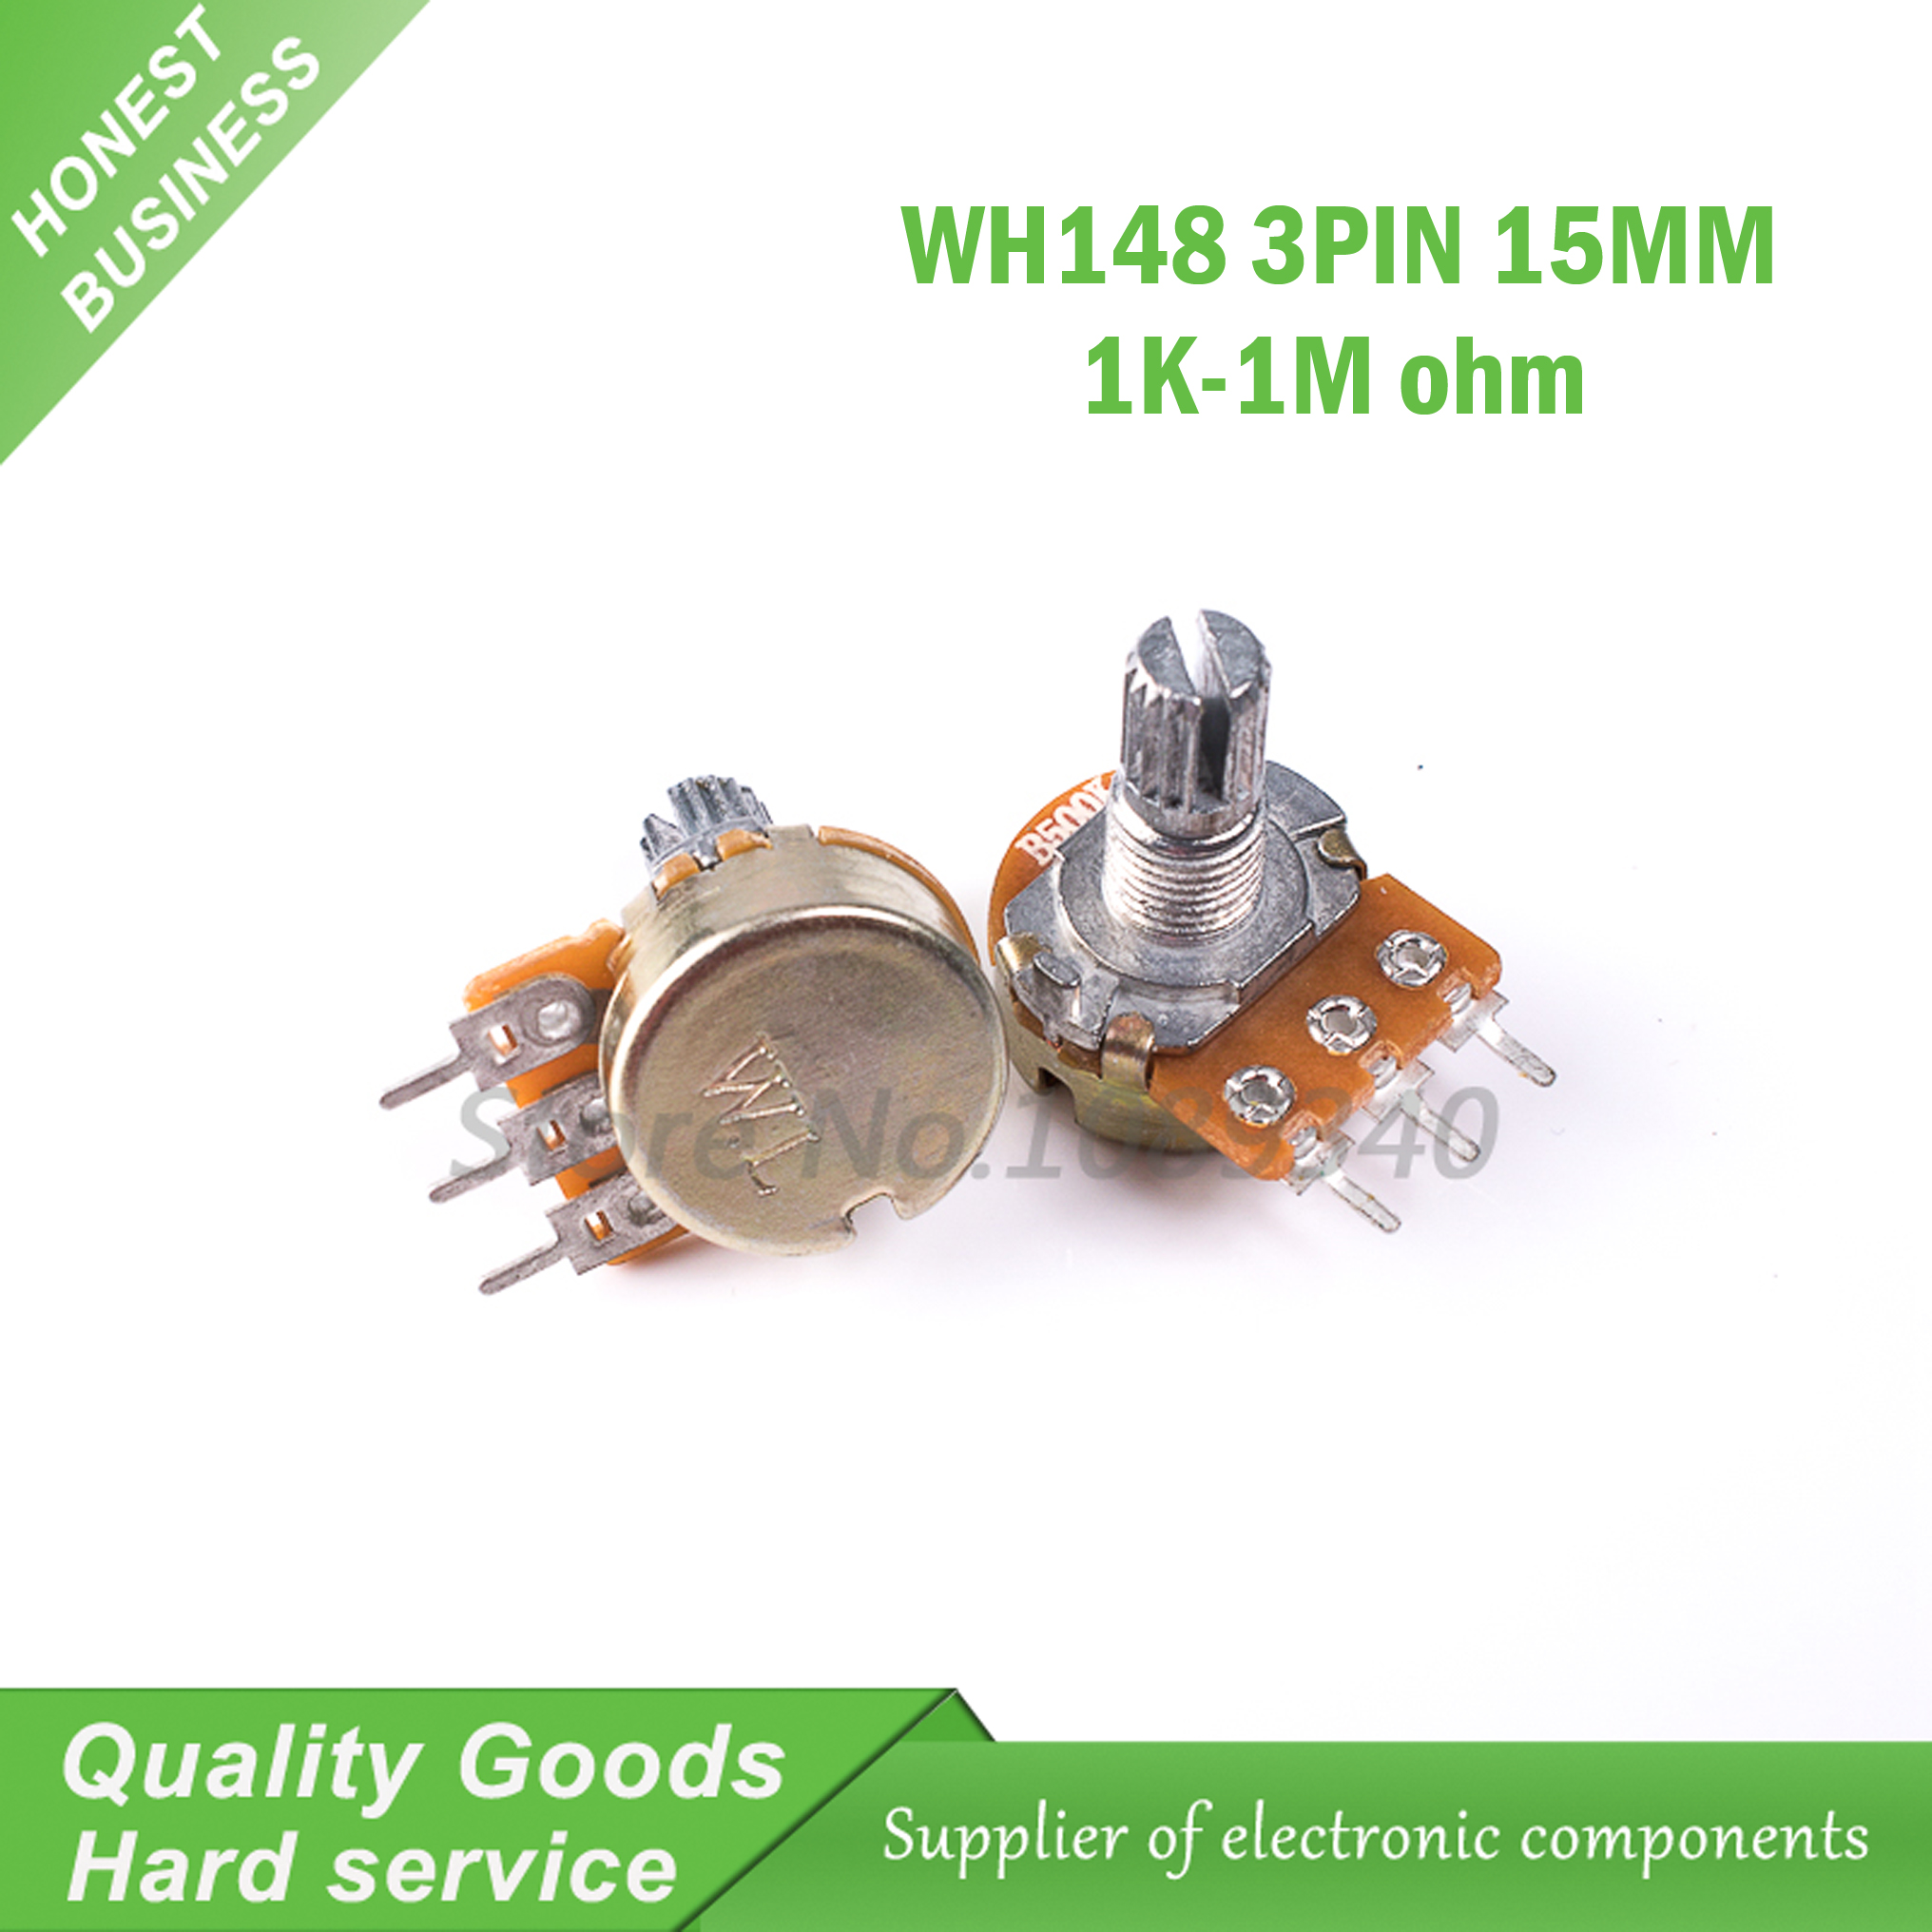 Hot Sale 5pcs Wh148 3pin 15mm B1k B2k B5k B10k B20k B50k B100k B250k Integrated Circuits Suppliers For B500k B1m Potentiometer With Nuts And Washers 1k 2k 5k 10k